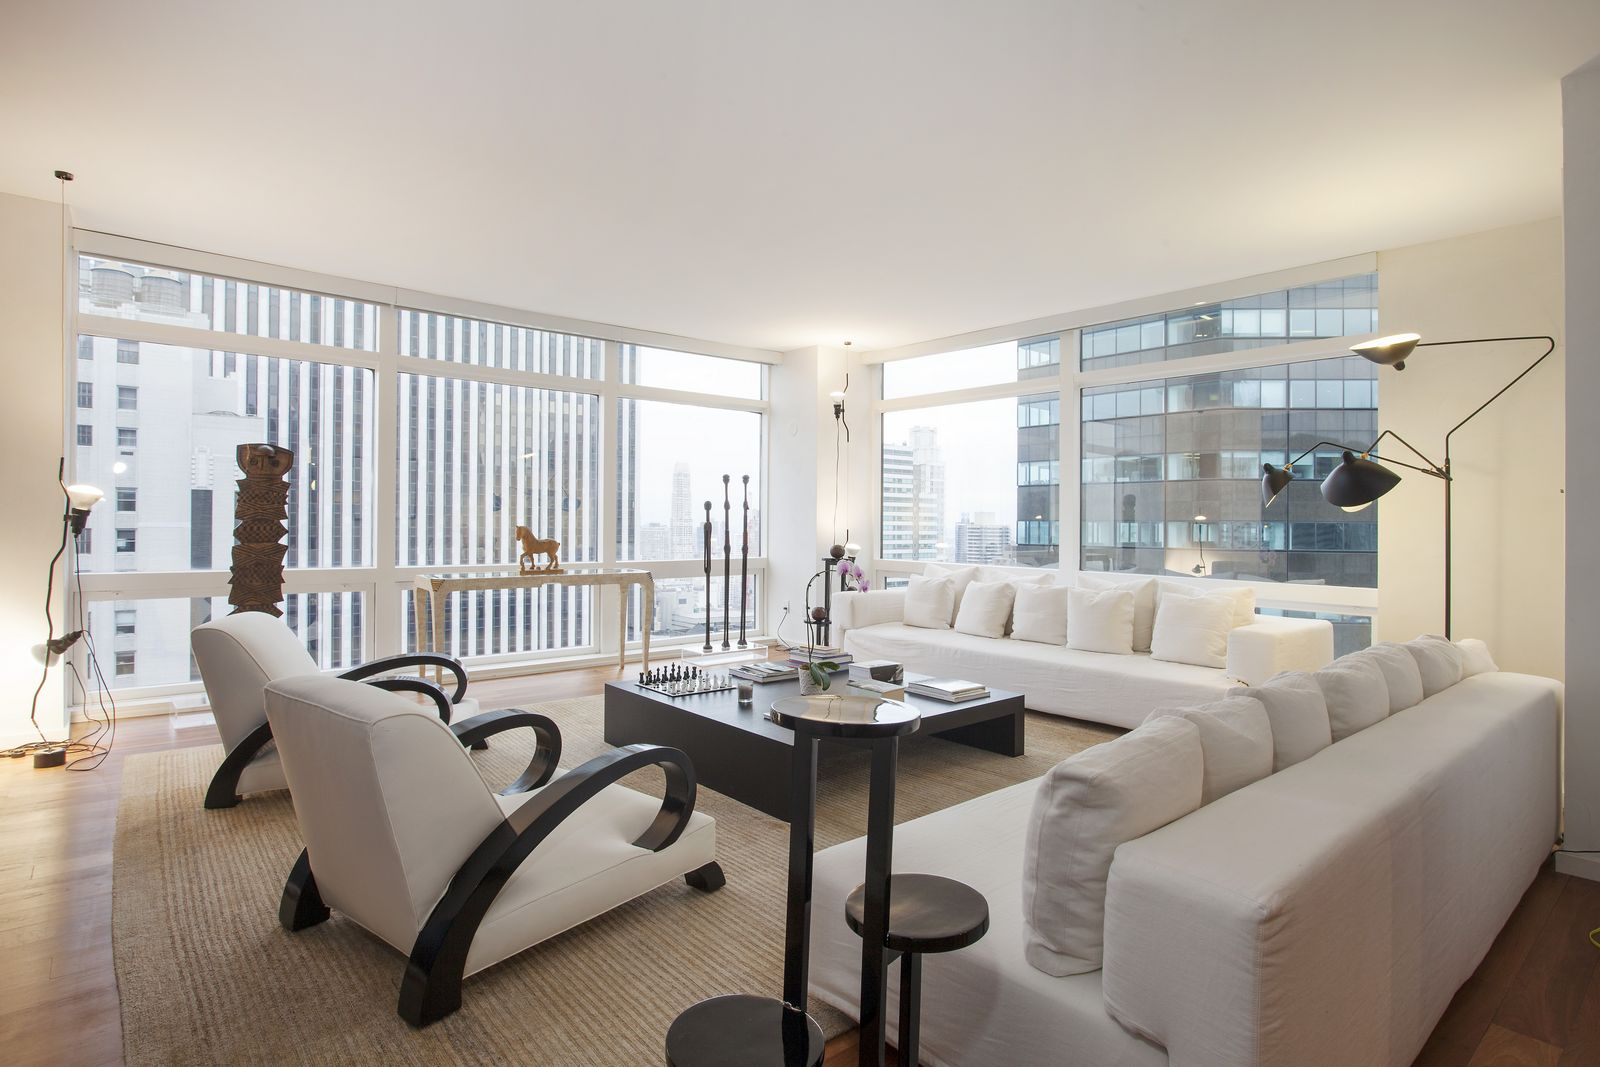 Stunning 10 million new york city apartment for sale for New york city apartments for sale